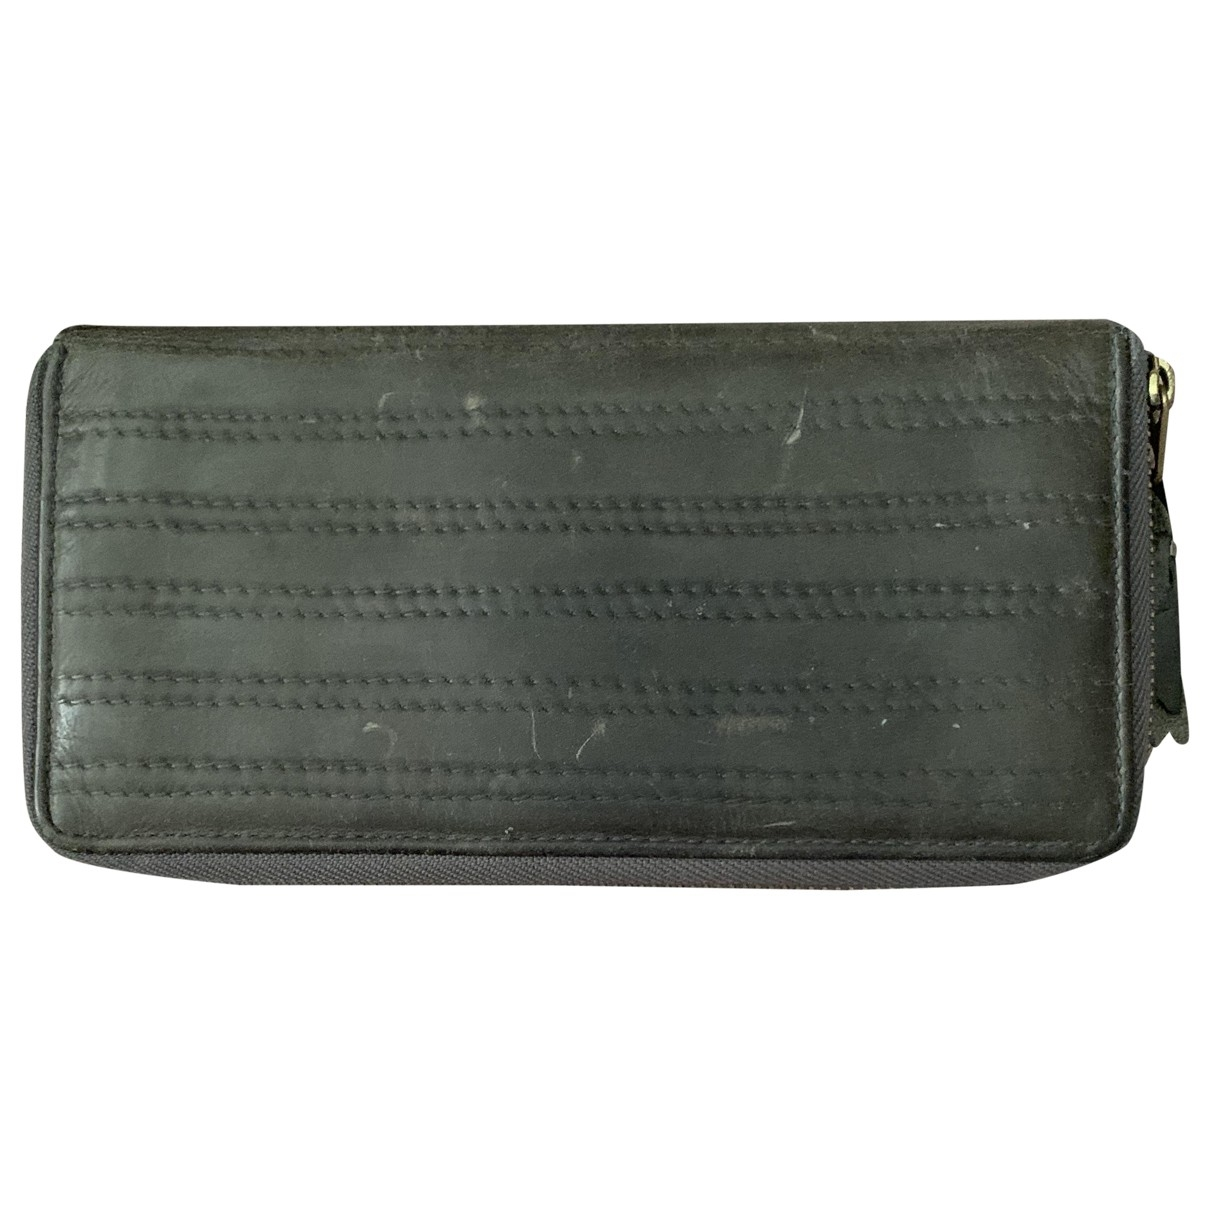 Comme Des Garcons \N Grey Leather wallet for Women \N